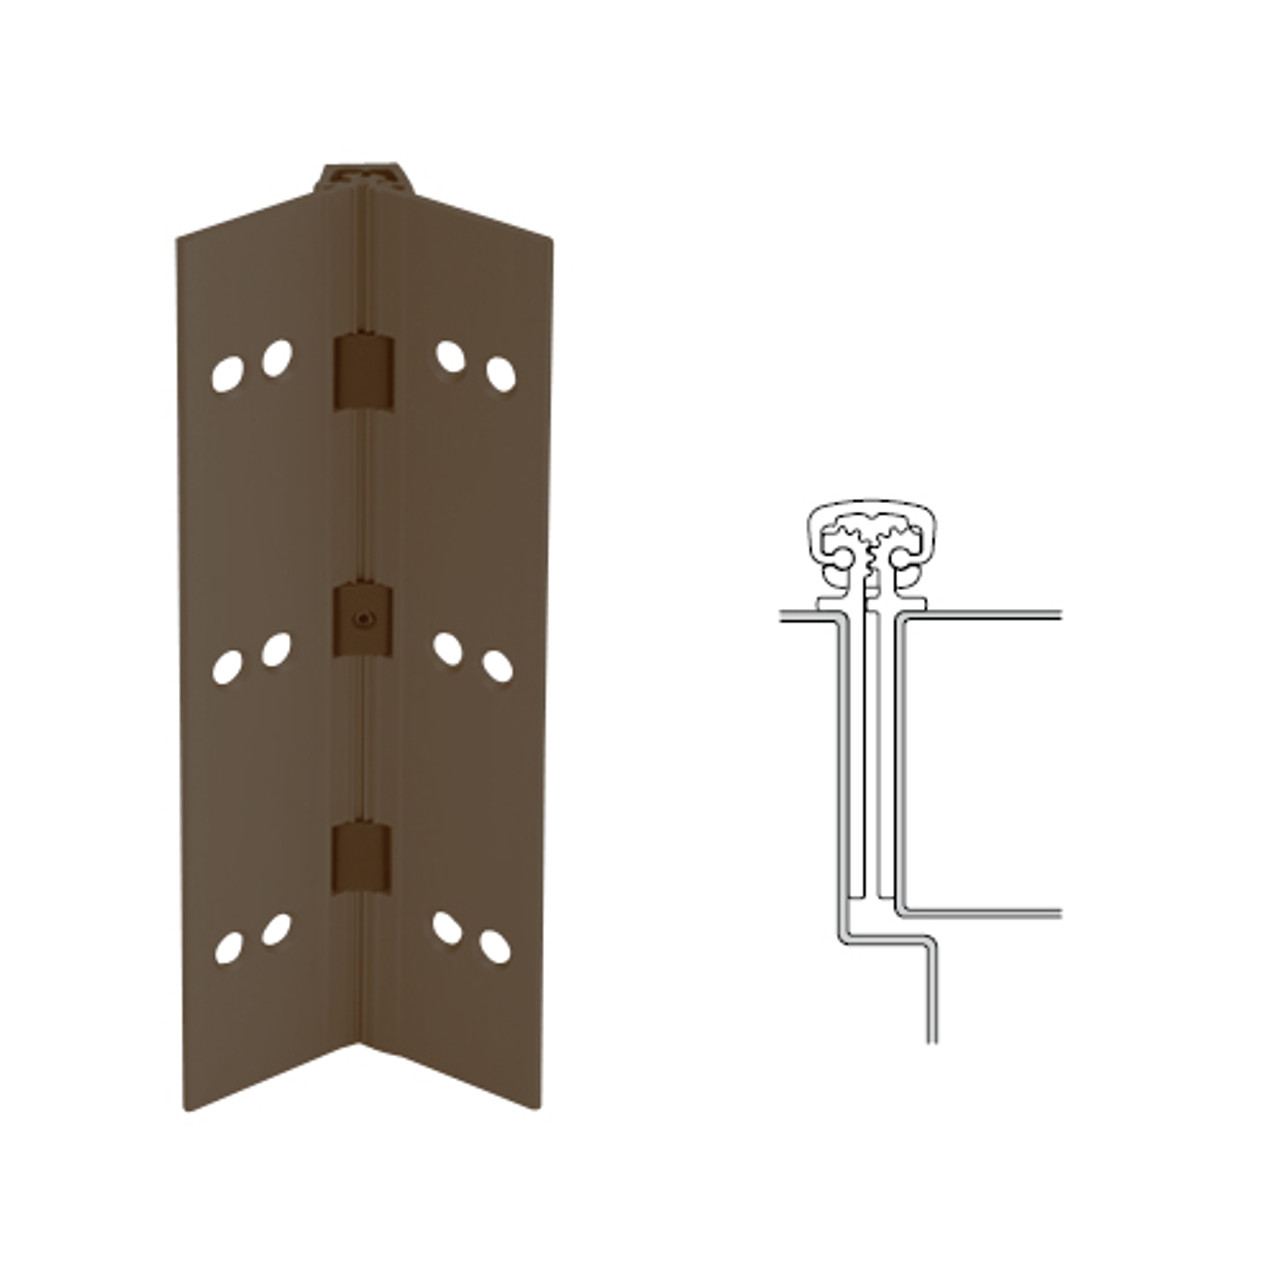 027XY-313AN-95 IVES Full Mortise Continuous Geared Hinges in Dark Bronze Anodized